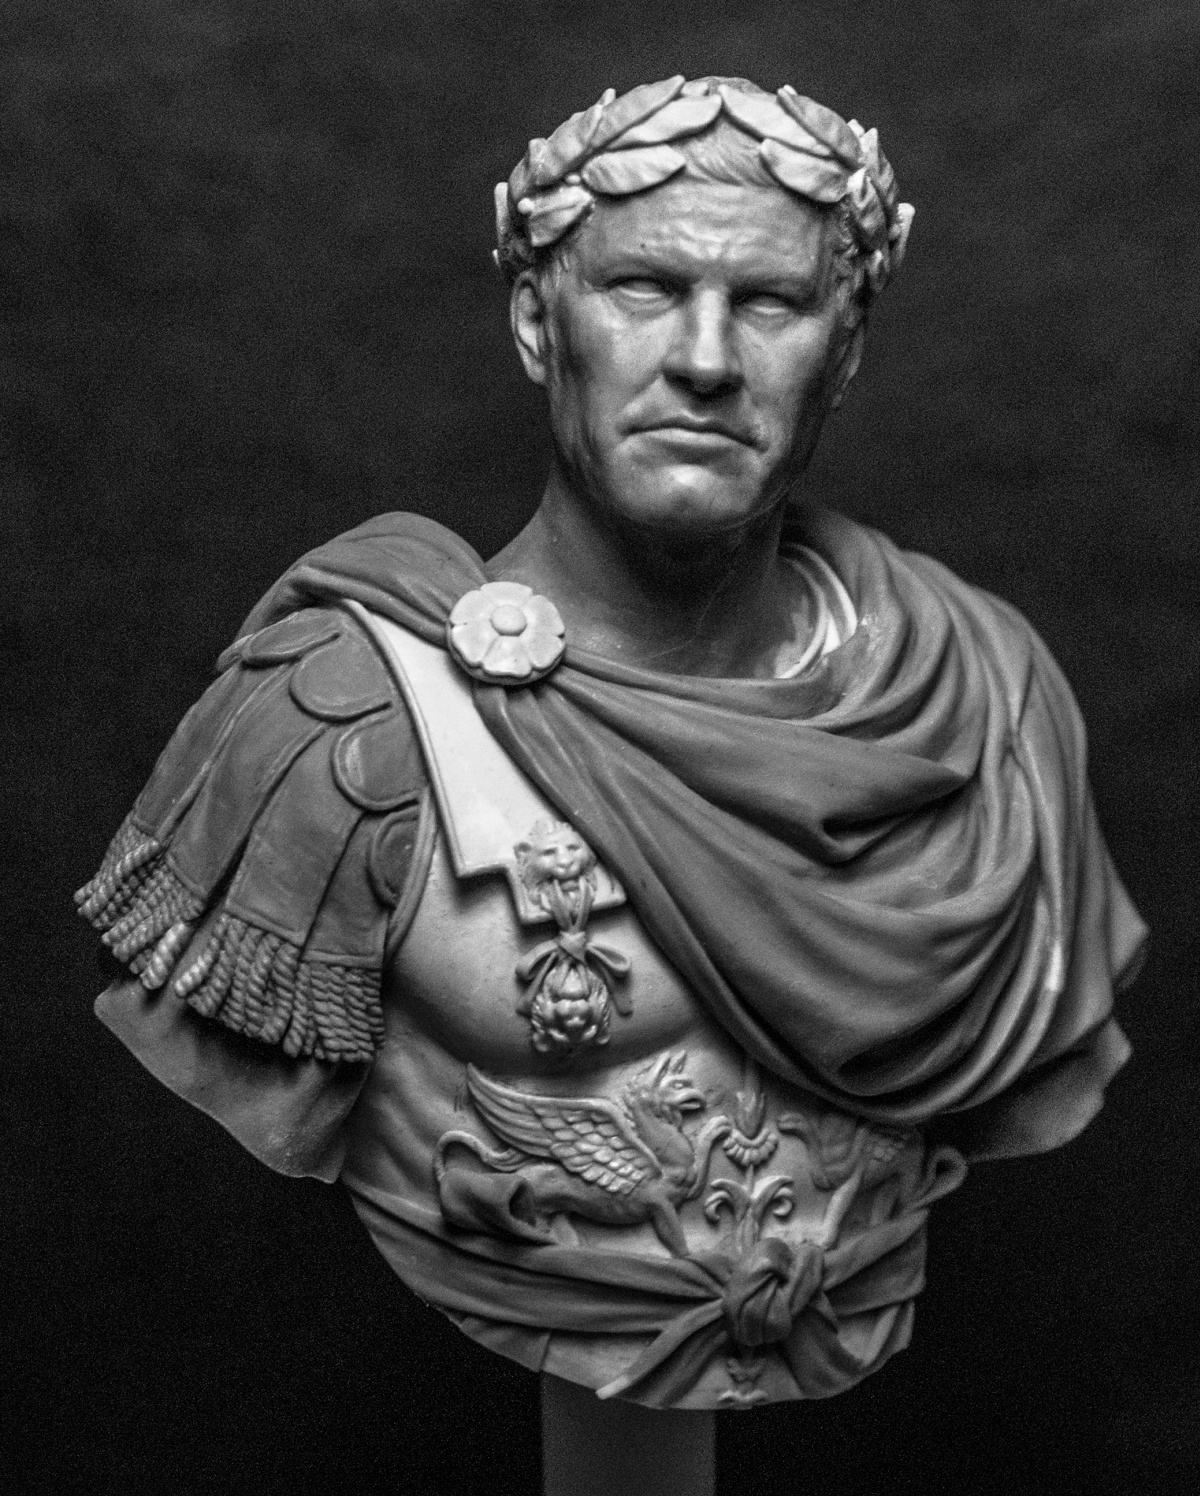 julius ceaser The action begins in february 44 bc julius caesar has just reentered rome in triumph after a victory in spain over the sons of his old enemy, pompey the great.